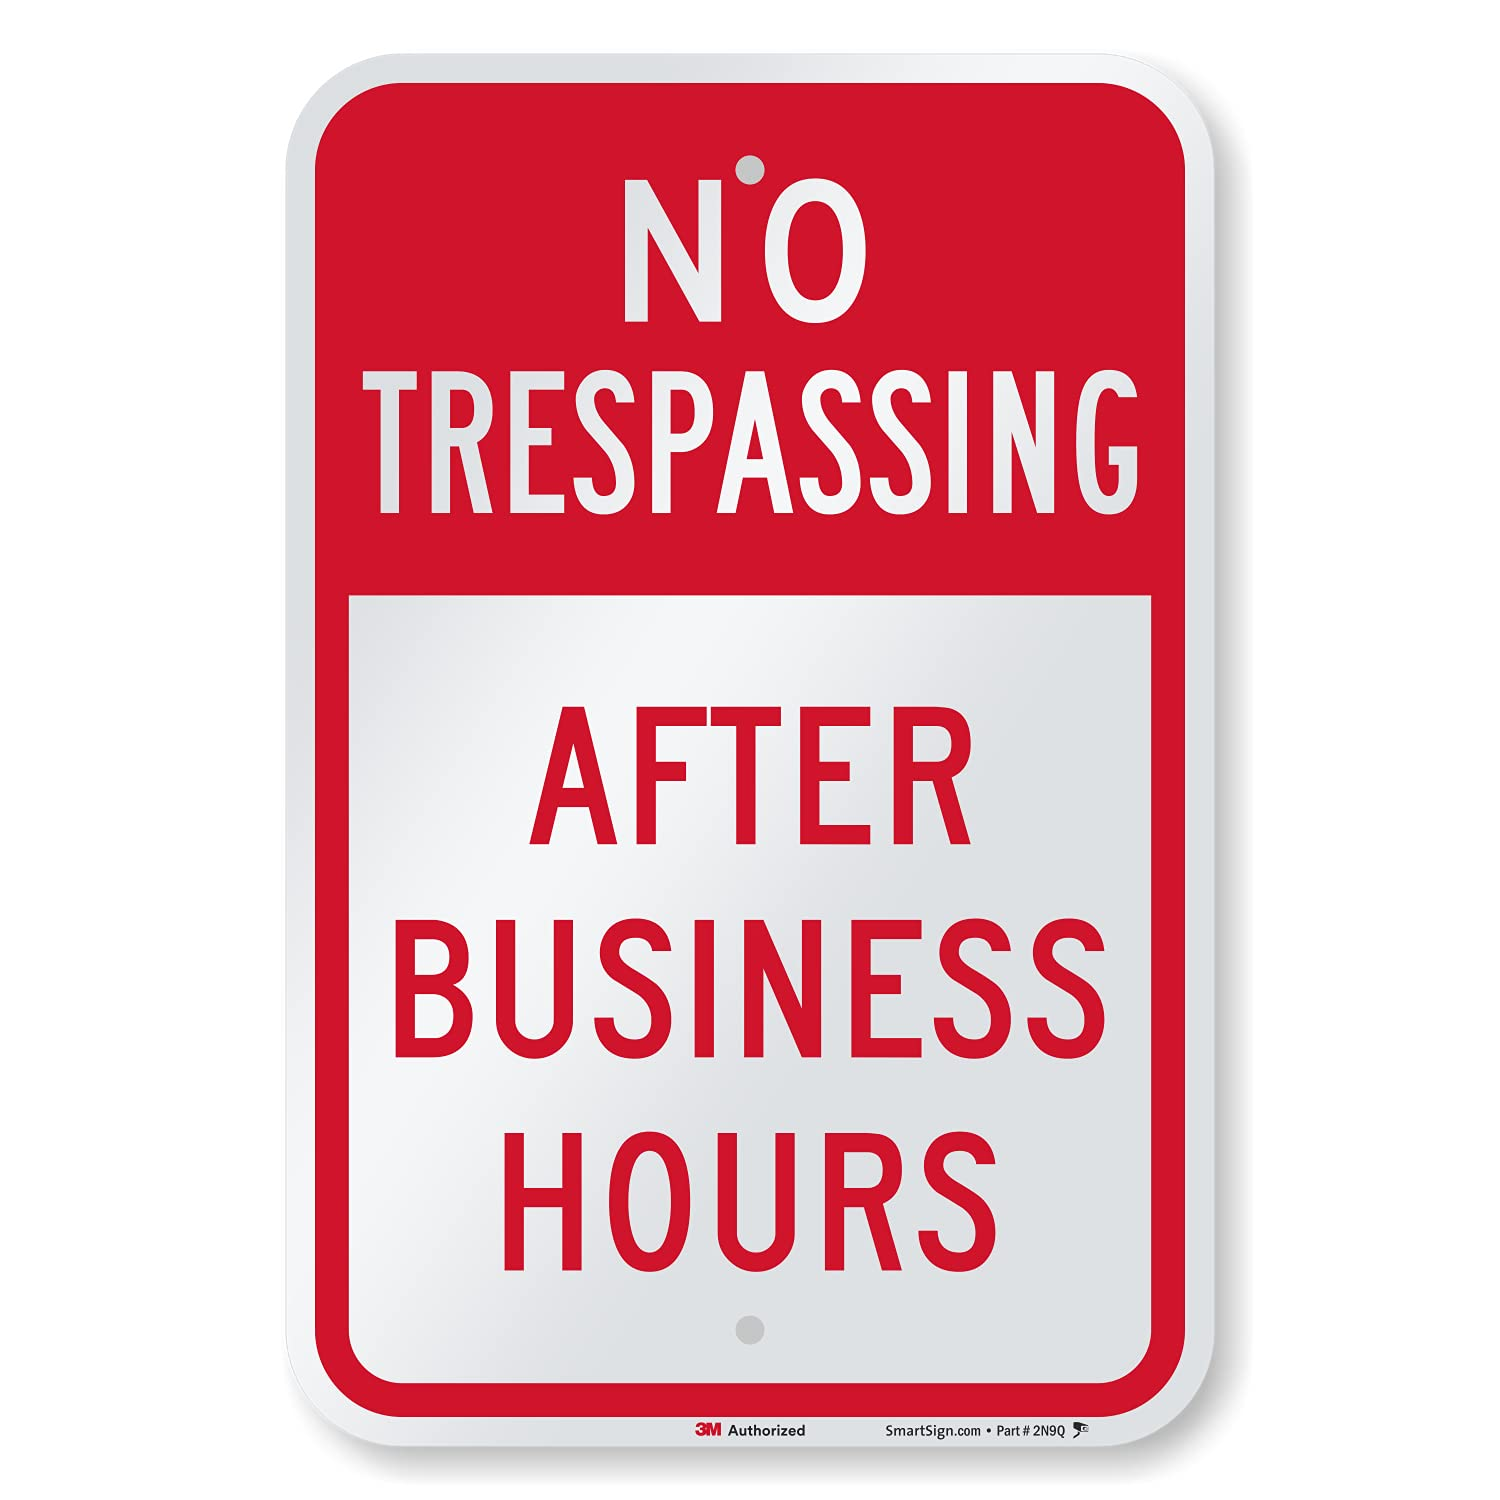 """Max 84% OFF SmartSign 18 x 12 inch """"No Met Trespassing Business Excellent Hours"""" After"""